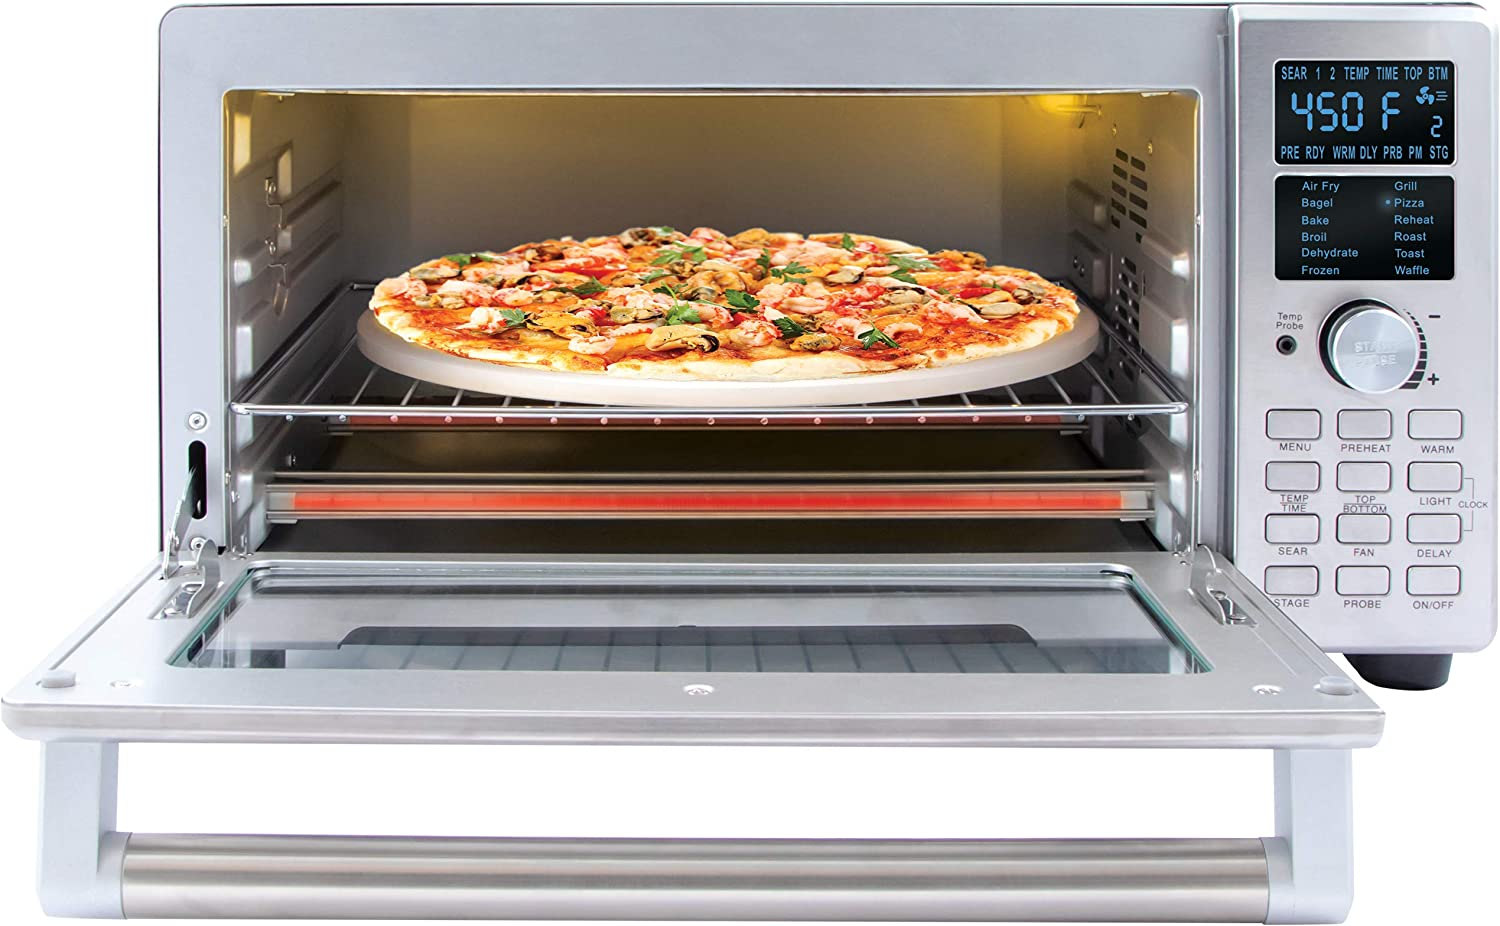 NEW NUWAVE BRAVO XL 1800-Watt Convection Oven with Crisping and Flavor Infusion Technology (FIT) with Integrated Digital Temperature Probe for Perfect Results; 12 Programmed Presets; 3 Fan Speeds; 5-Quartz Heating Elements; Precision Temperature Control from 100F to 450F in 5F increments; Cook up to a 10 LB. Chicken, 13 inch Pizza, or 9 Slices of Toast